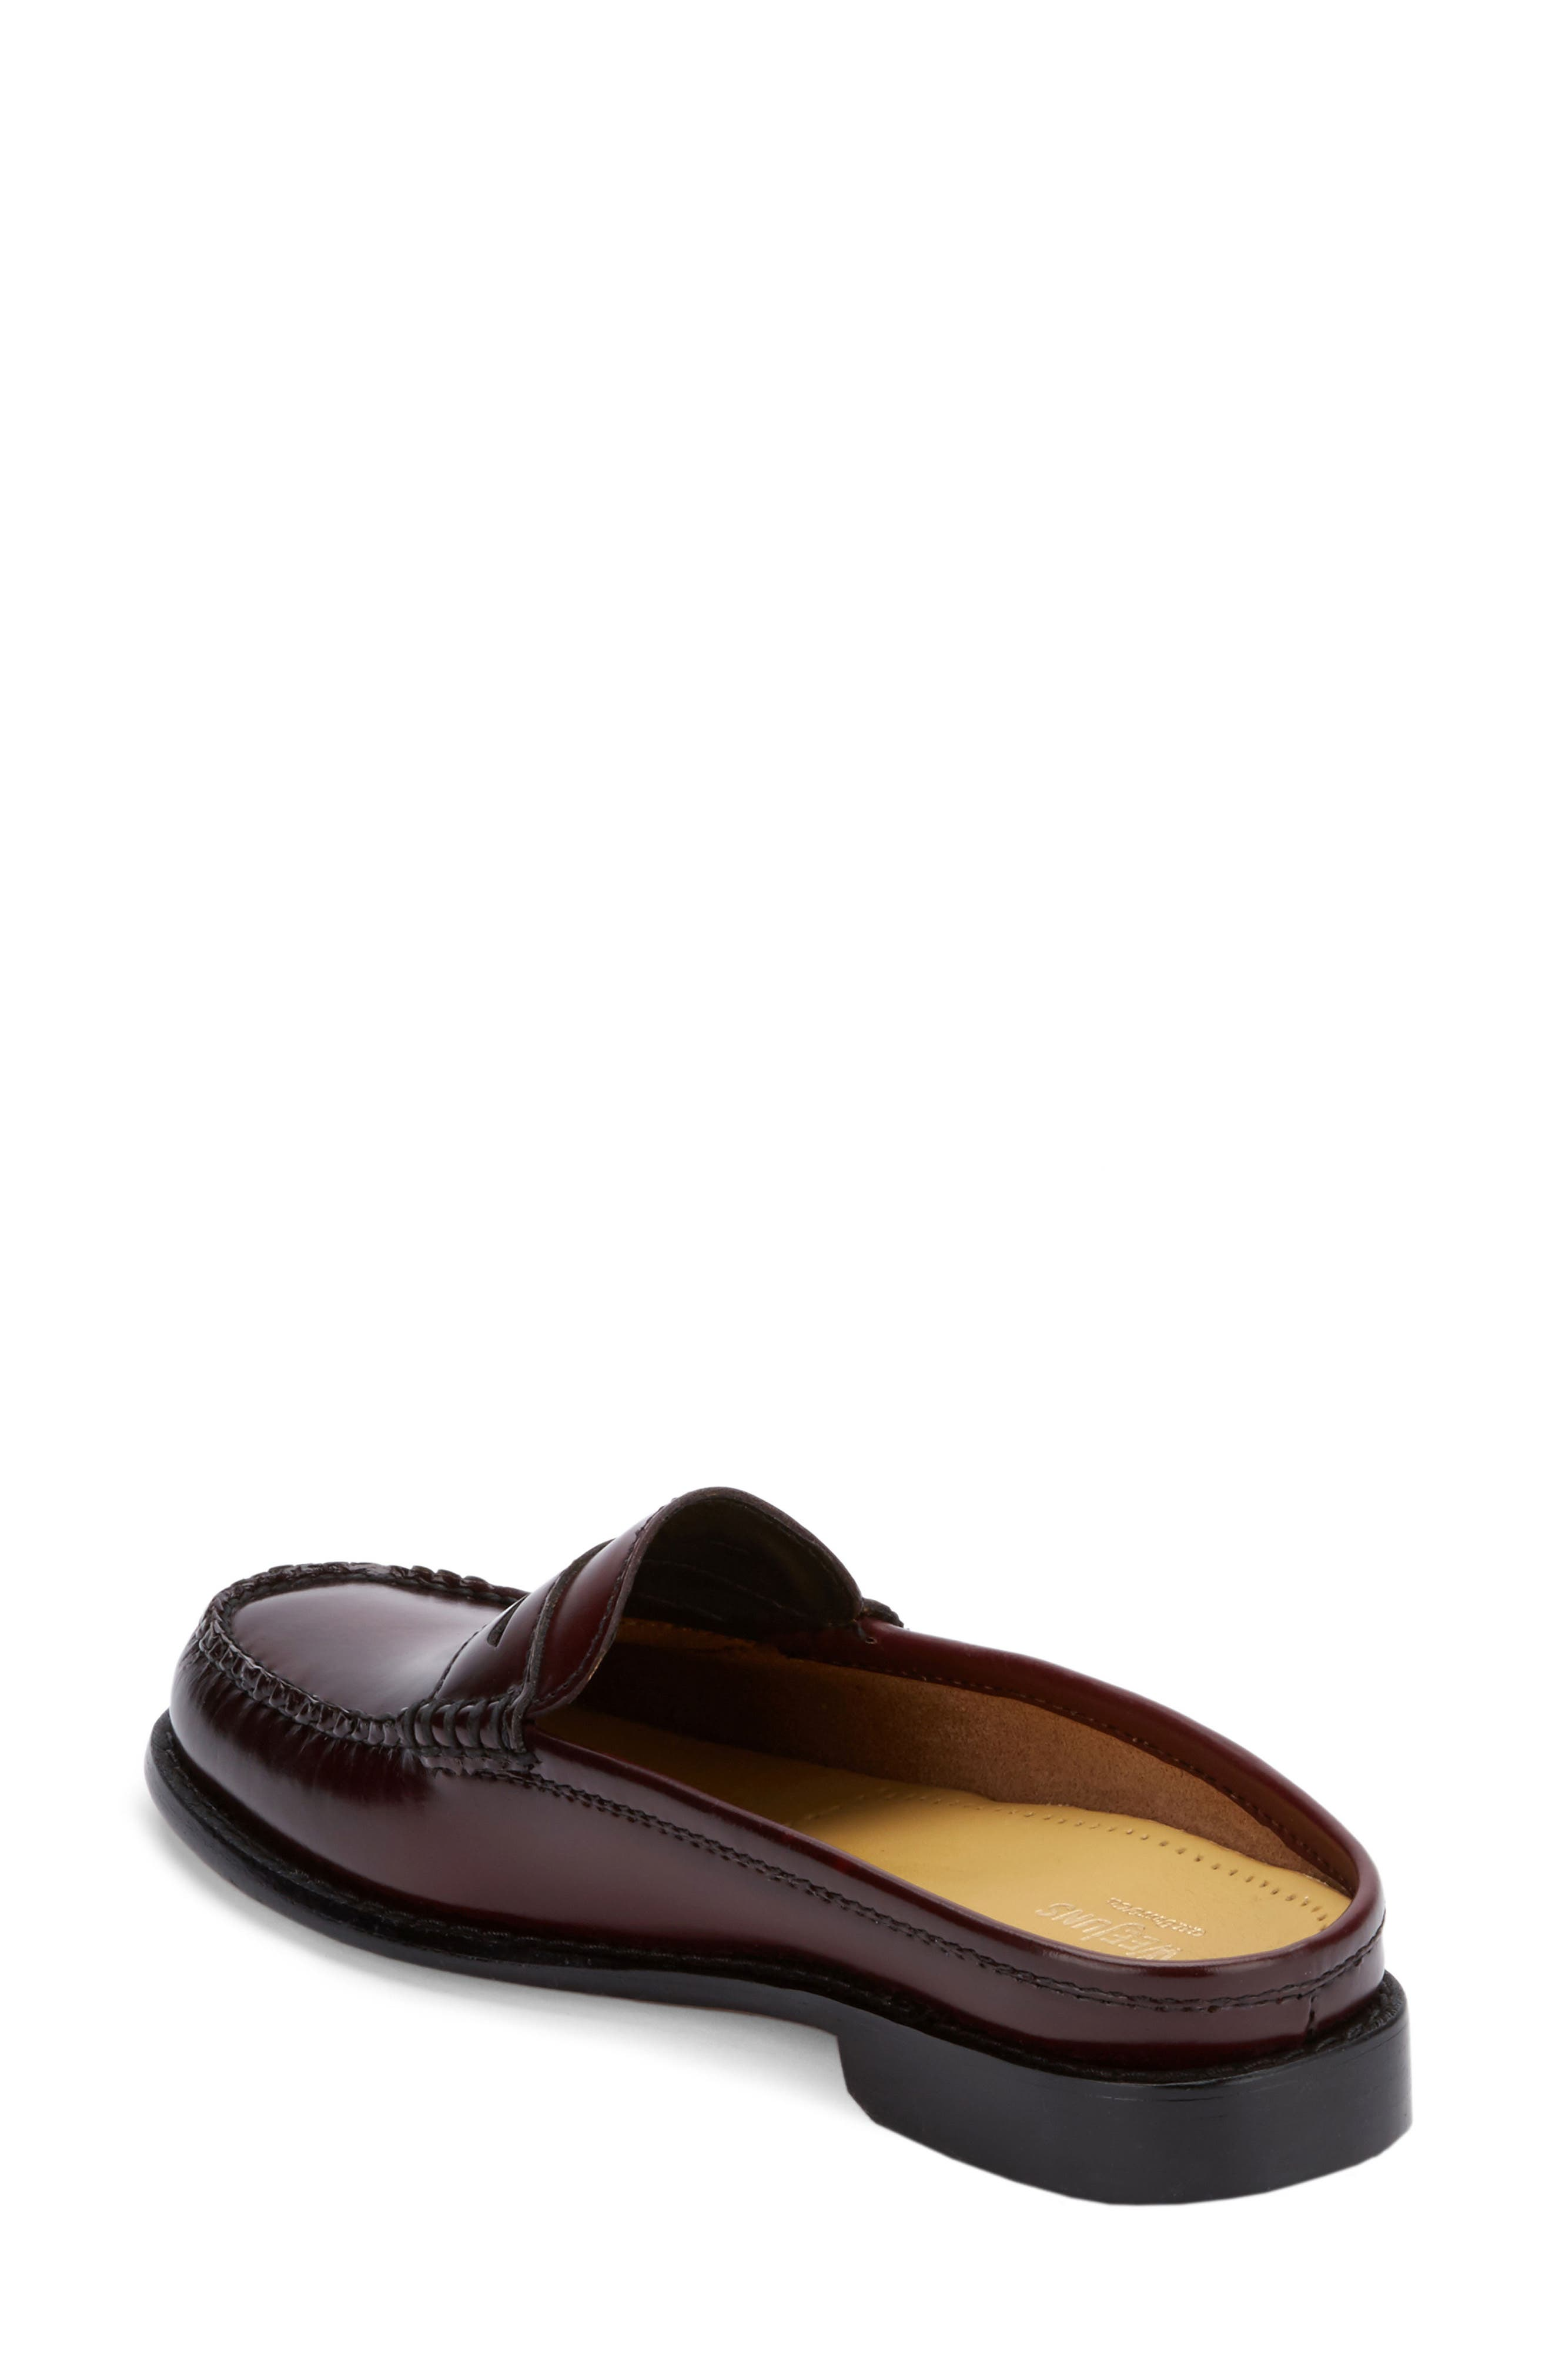 Wynn Loafer Mule,                             Alternate thumbnail 45, color,